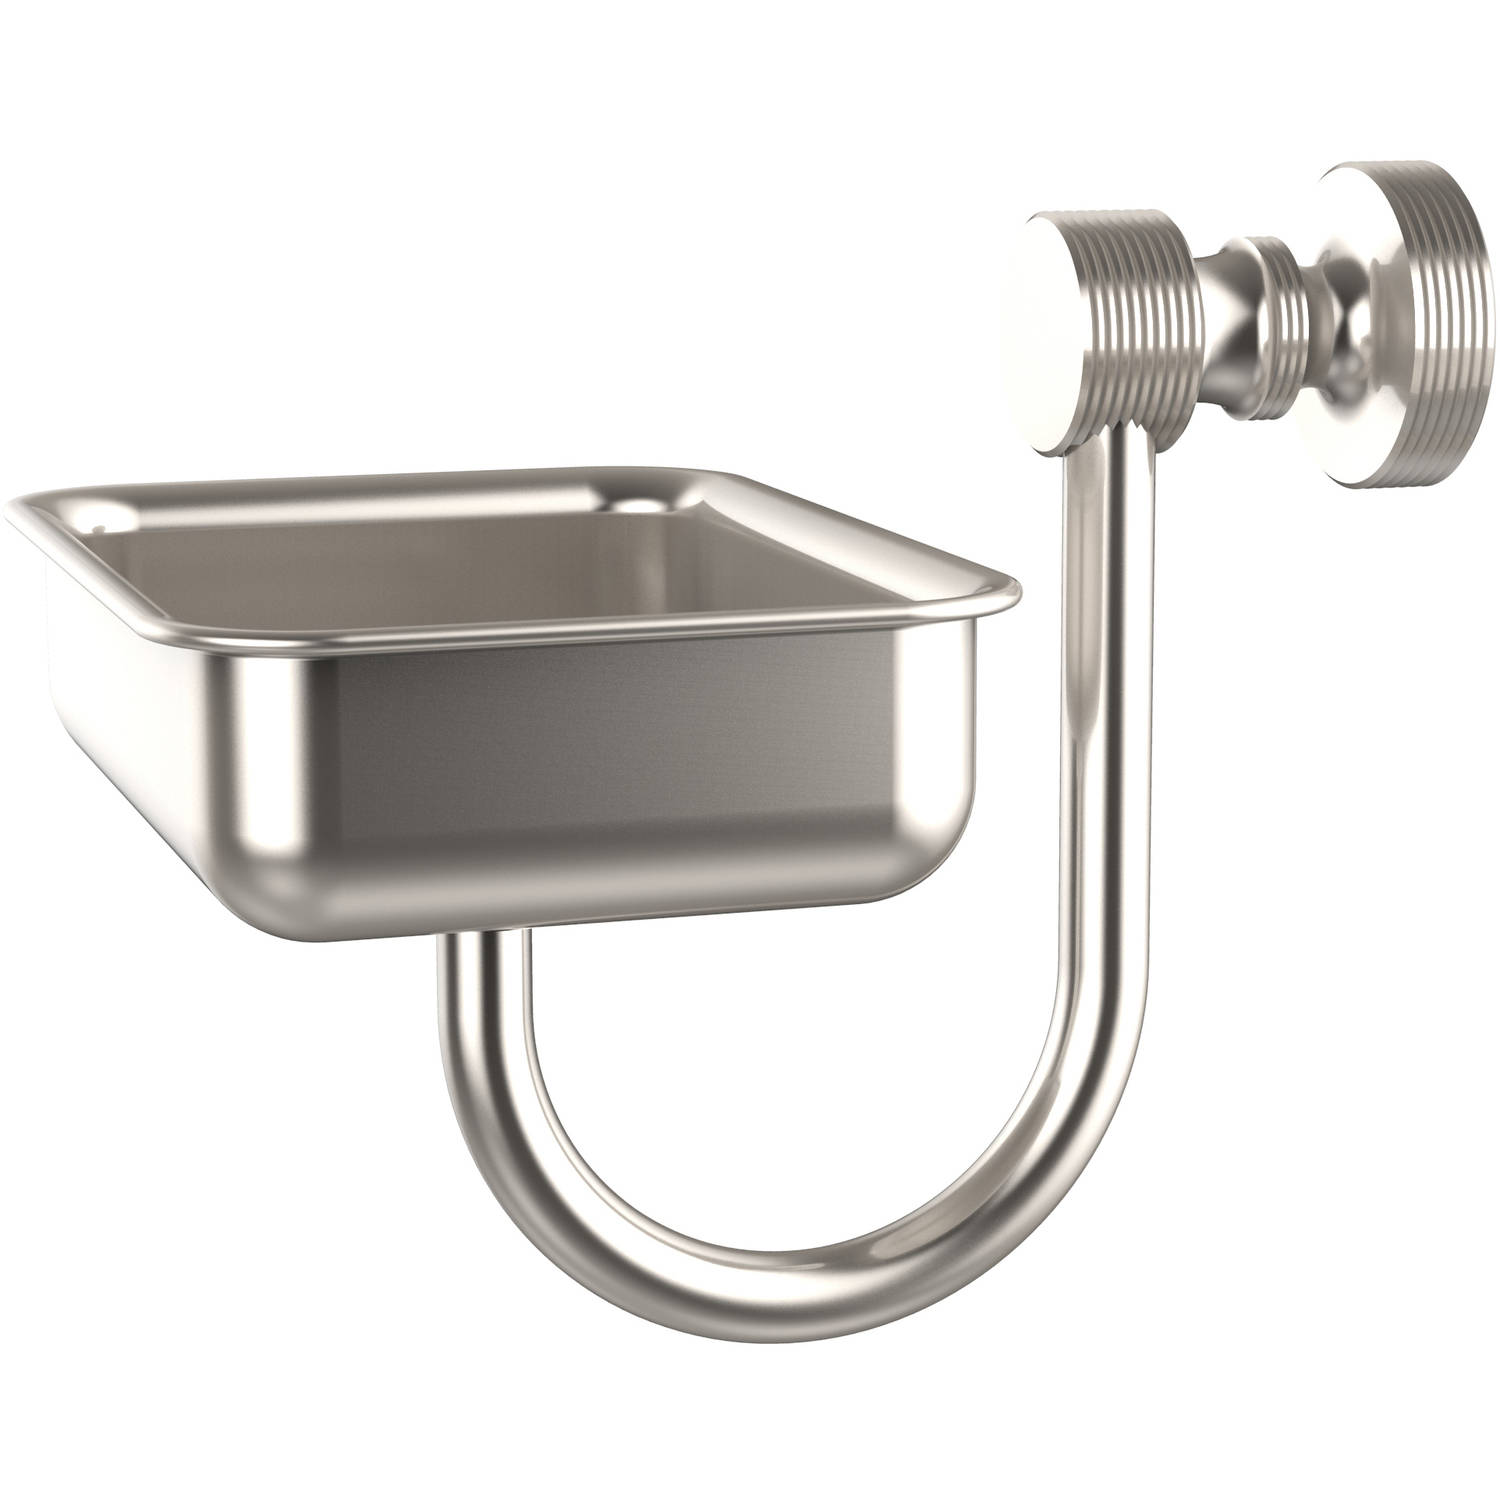 Foxtrot Collection Wall-Mounted Soap Dish (Build to Order)